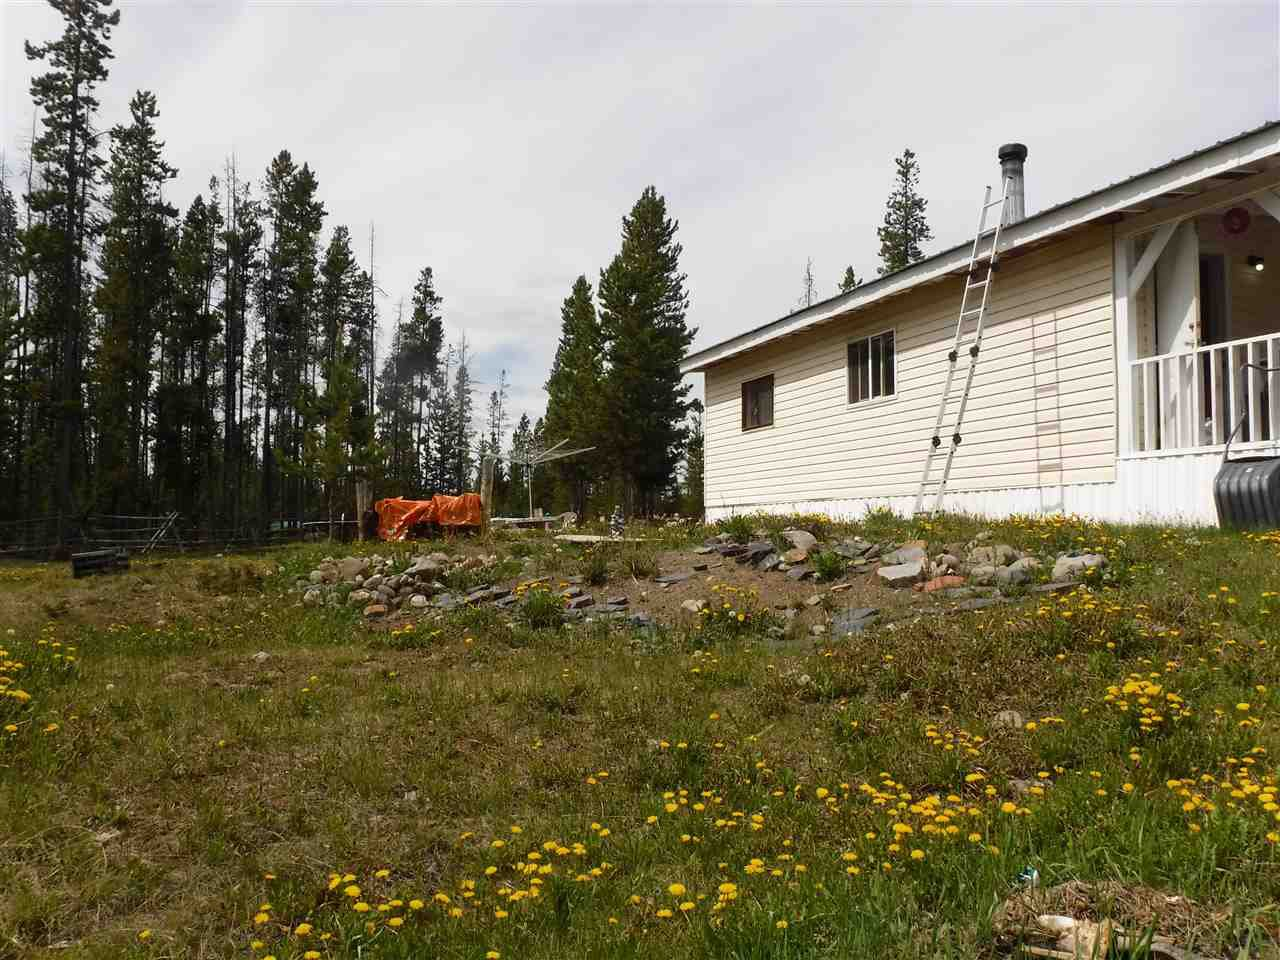 Main Photo: 2115 DORSEY Road in Williams Lake: Williams Lake - Rural West Manufactured Home for sale (Williams Lake (Zone 27))  : MLS®# R2461269